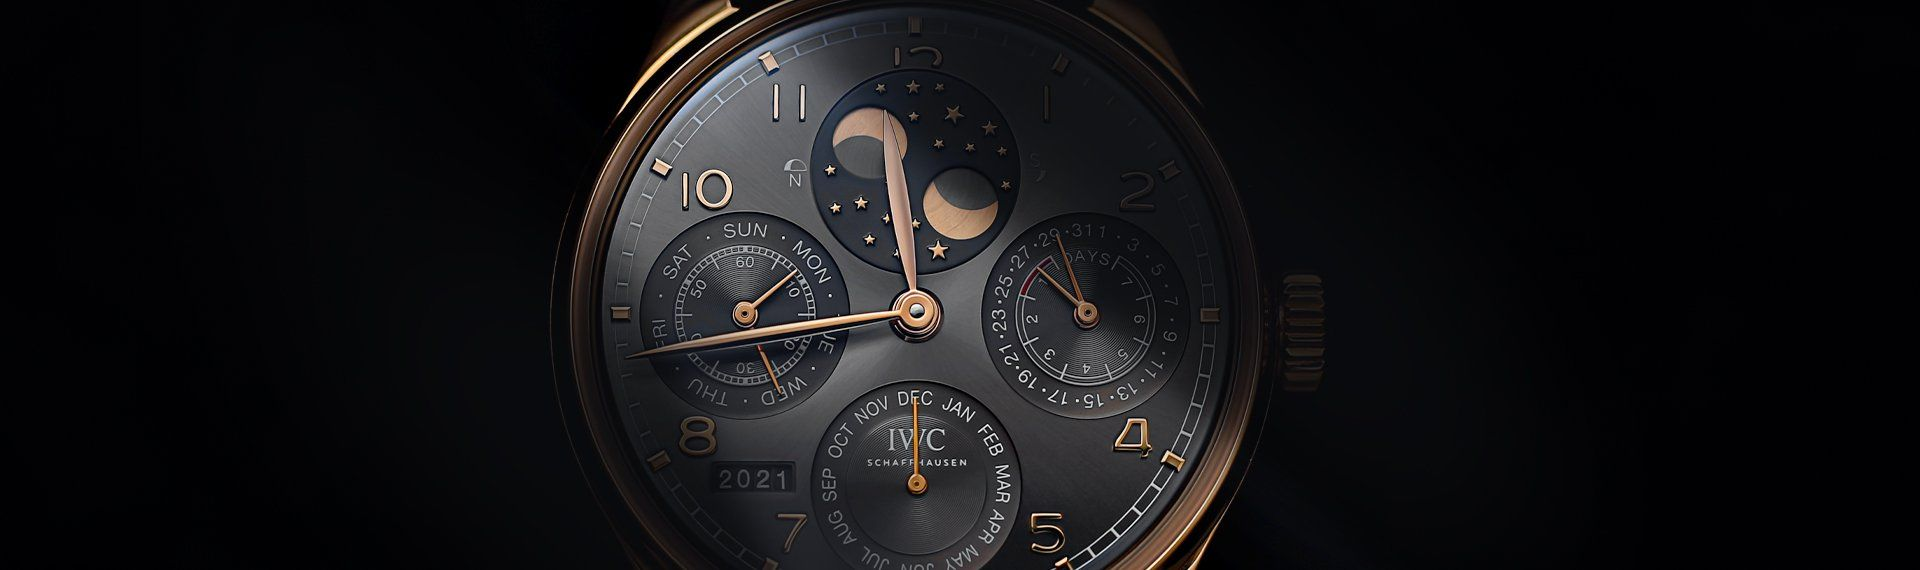 Hot Watches with Burdeen's Jewelry